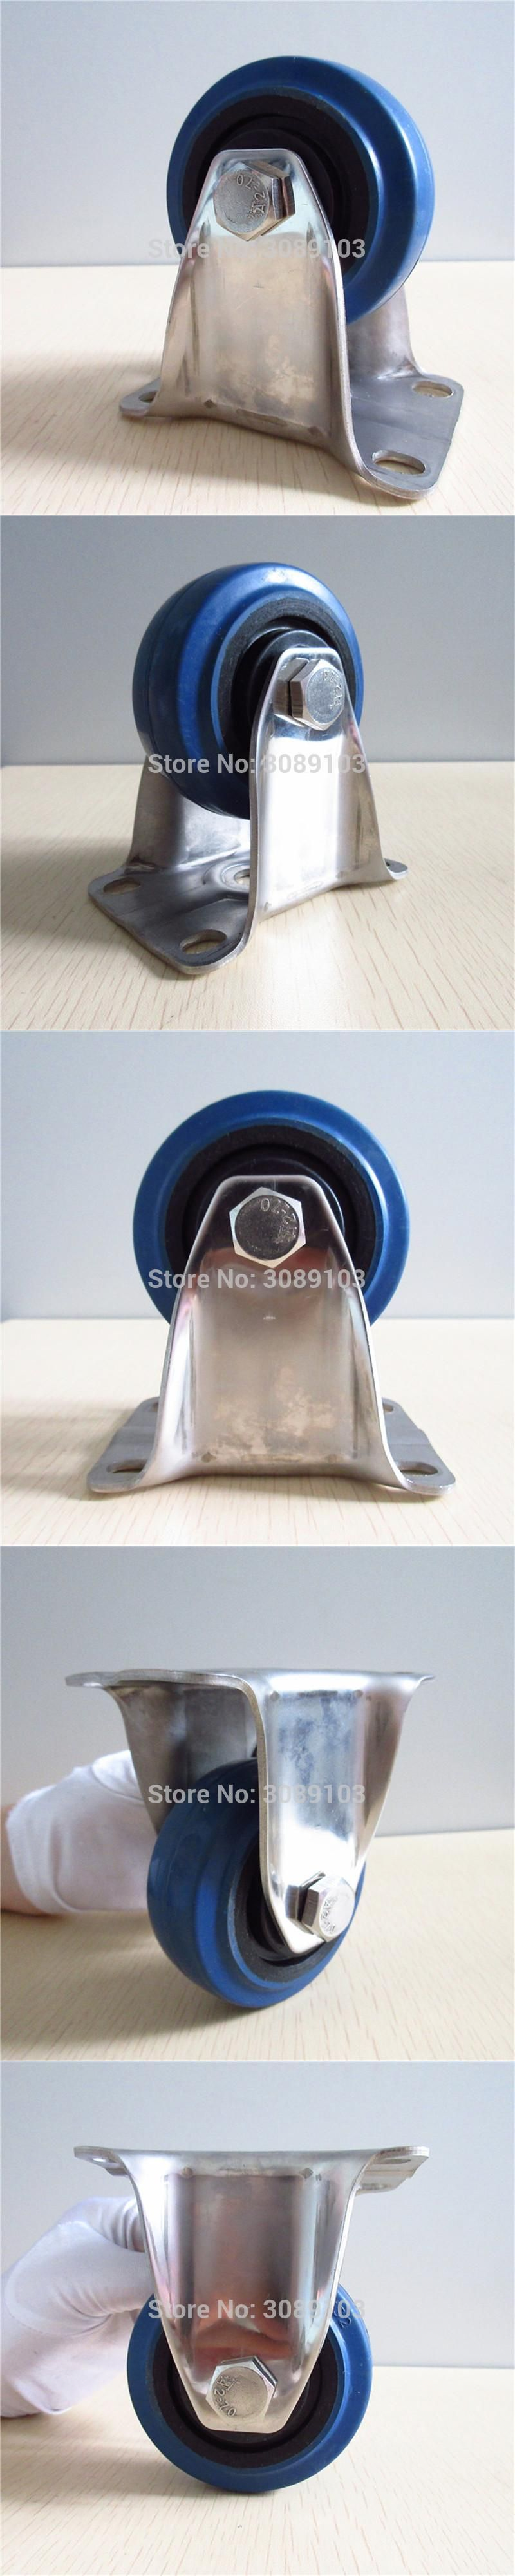 4 pcs 5 Inch rigid caster low noise 304 stainless steel casters with